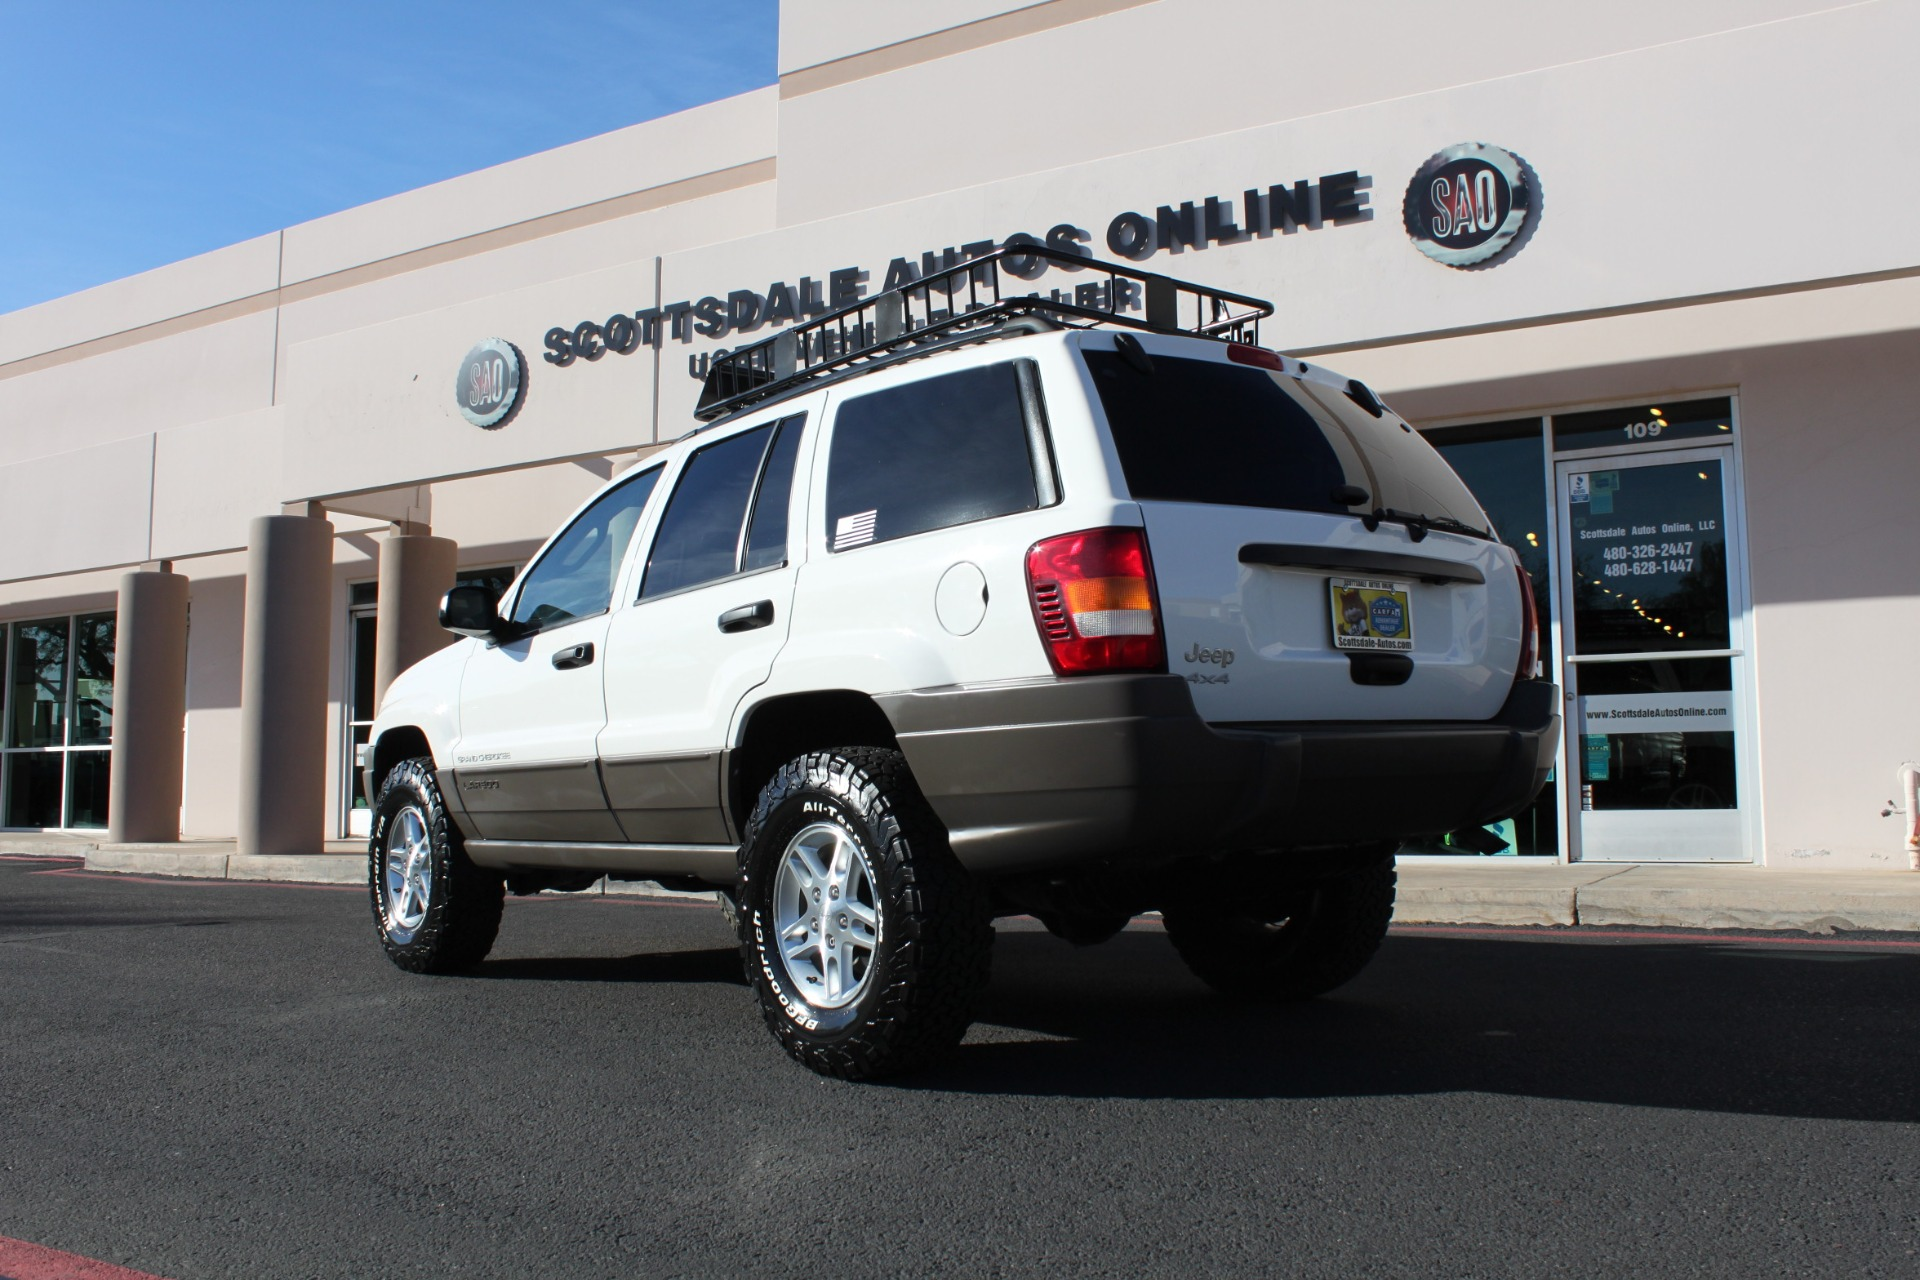 Used-2004-Jeep-Grand-Cherokee-Laredo-LS400